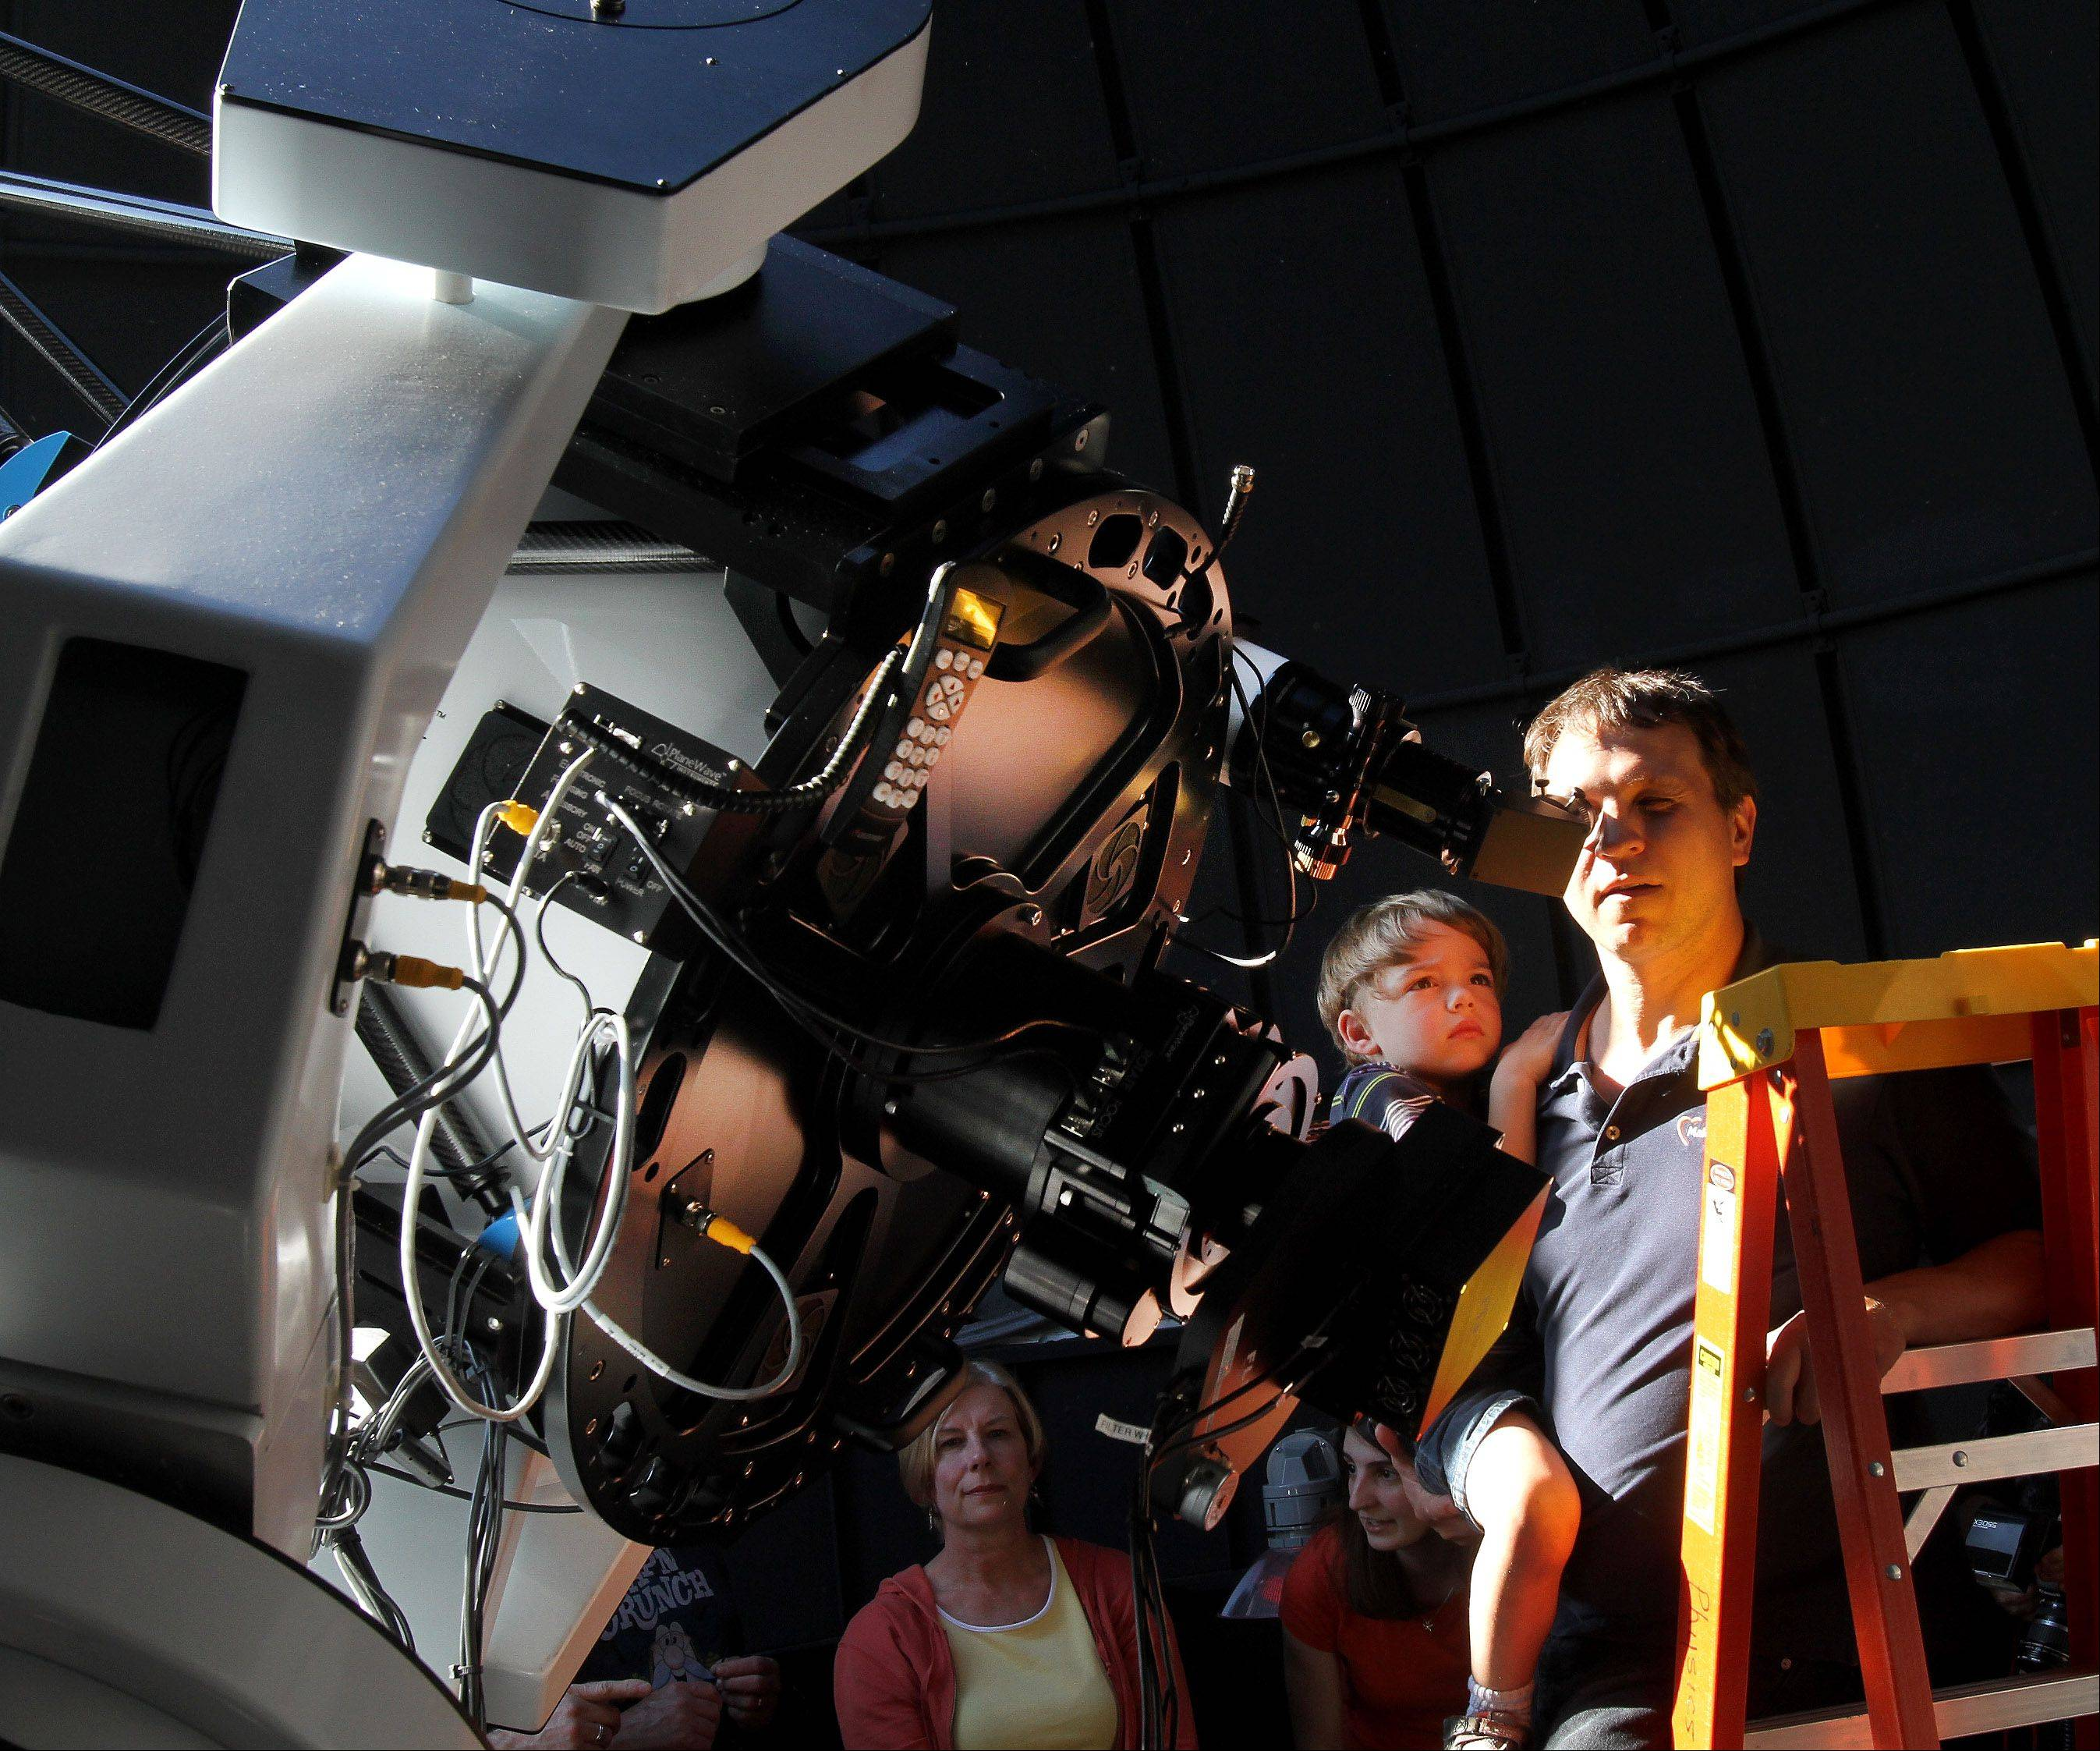 Andris Slokenbergs of Geneva and his son Emils, 3 1/2, take a look through the main telescope in the Wheaton College Astronomical Observatory, which opened Tuesday evening for free viewings of the Transit of Venus.